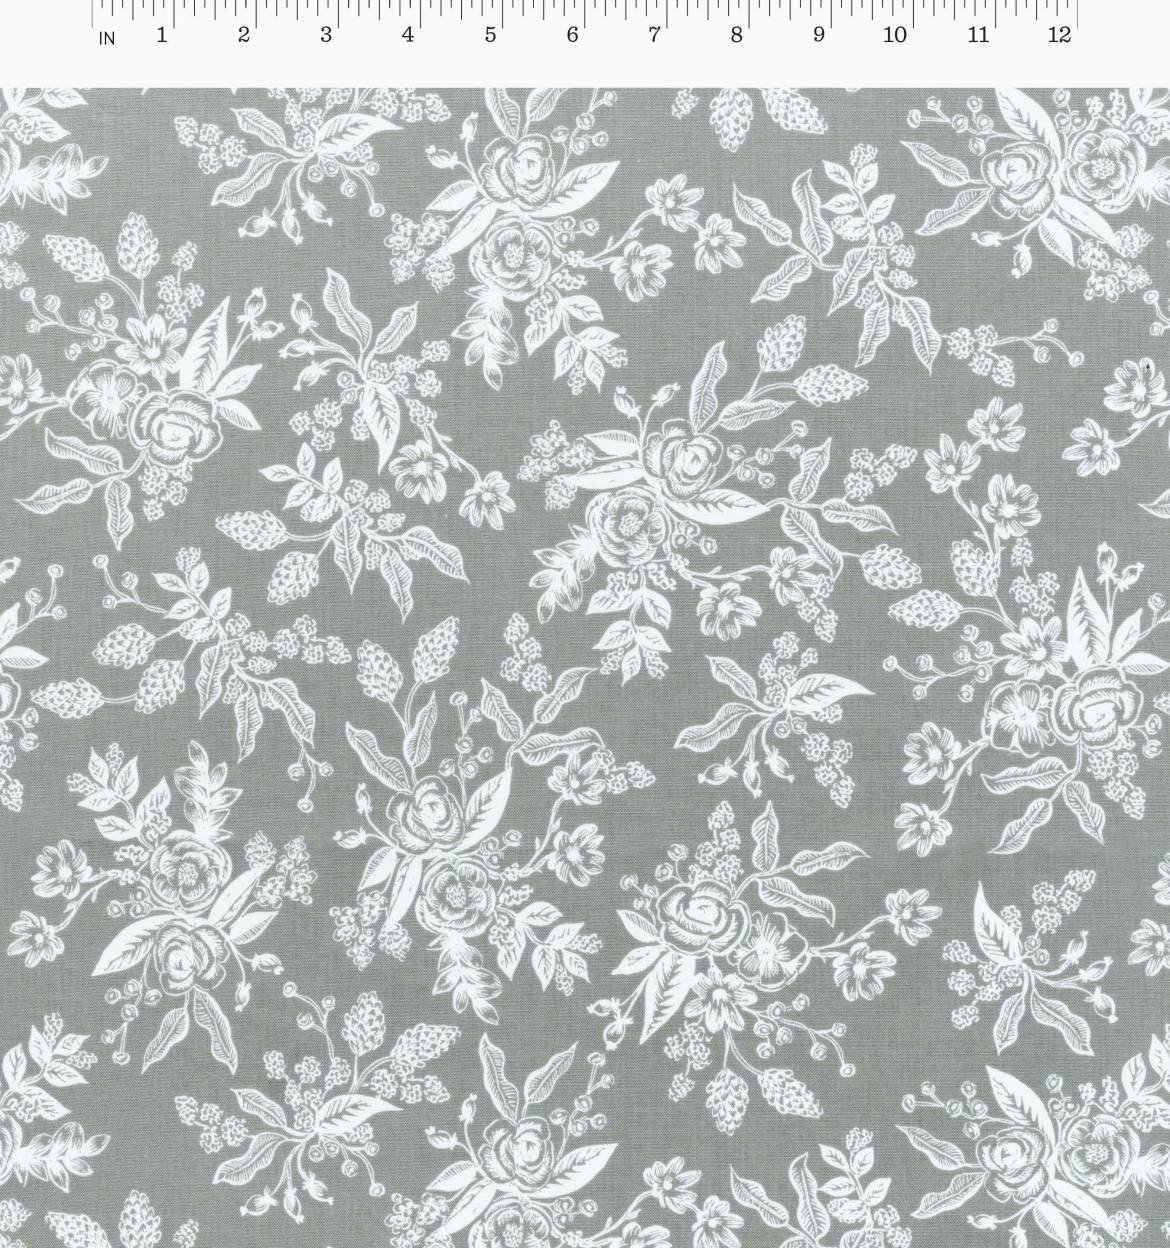 English Garden - Toile - Gray